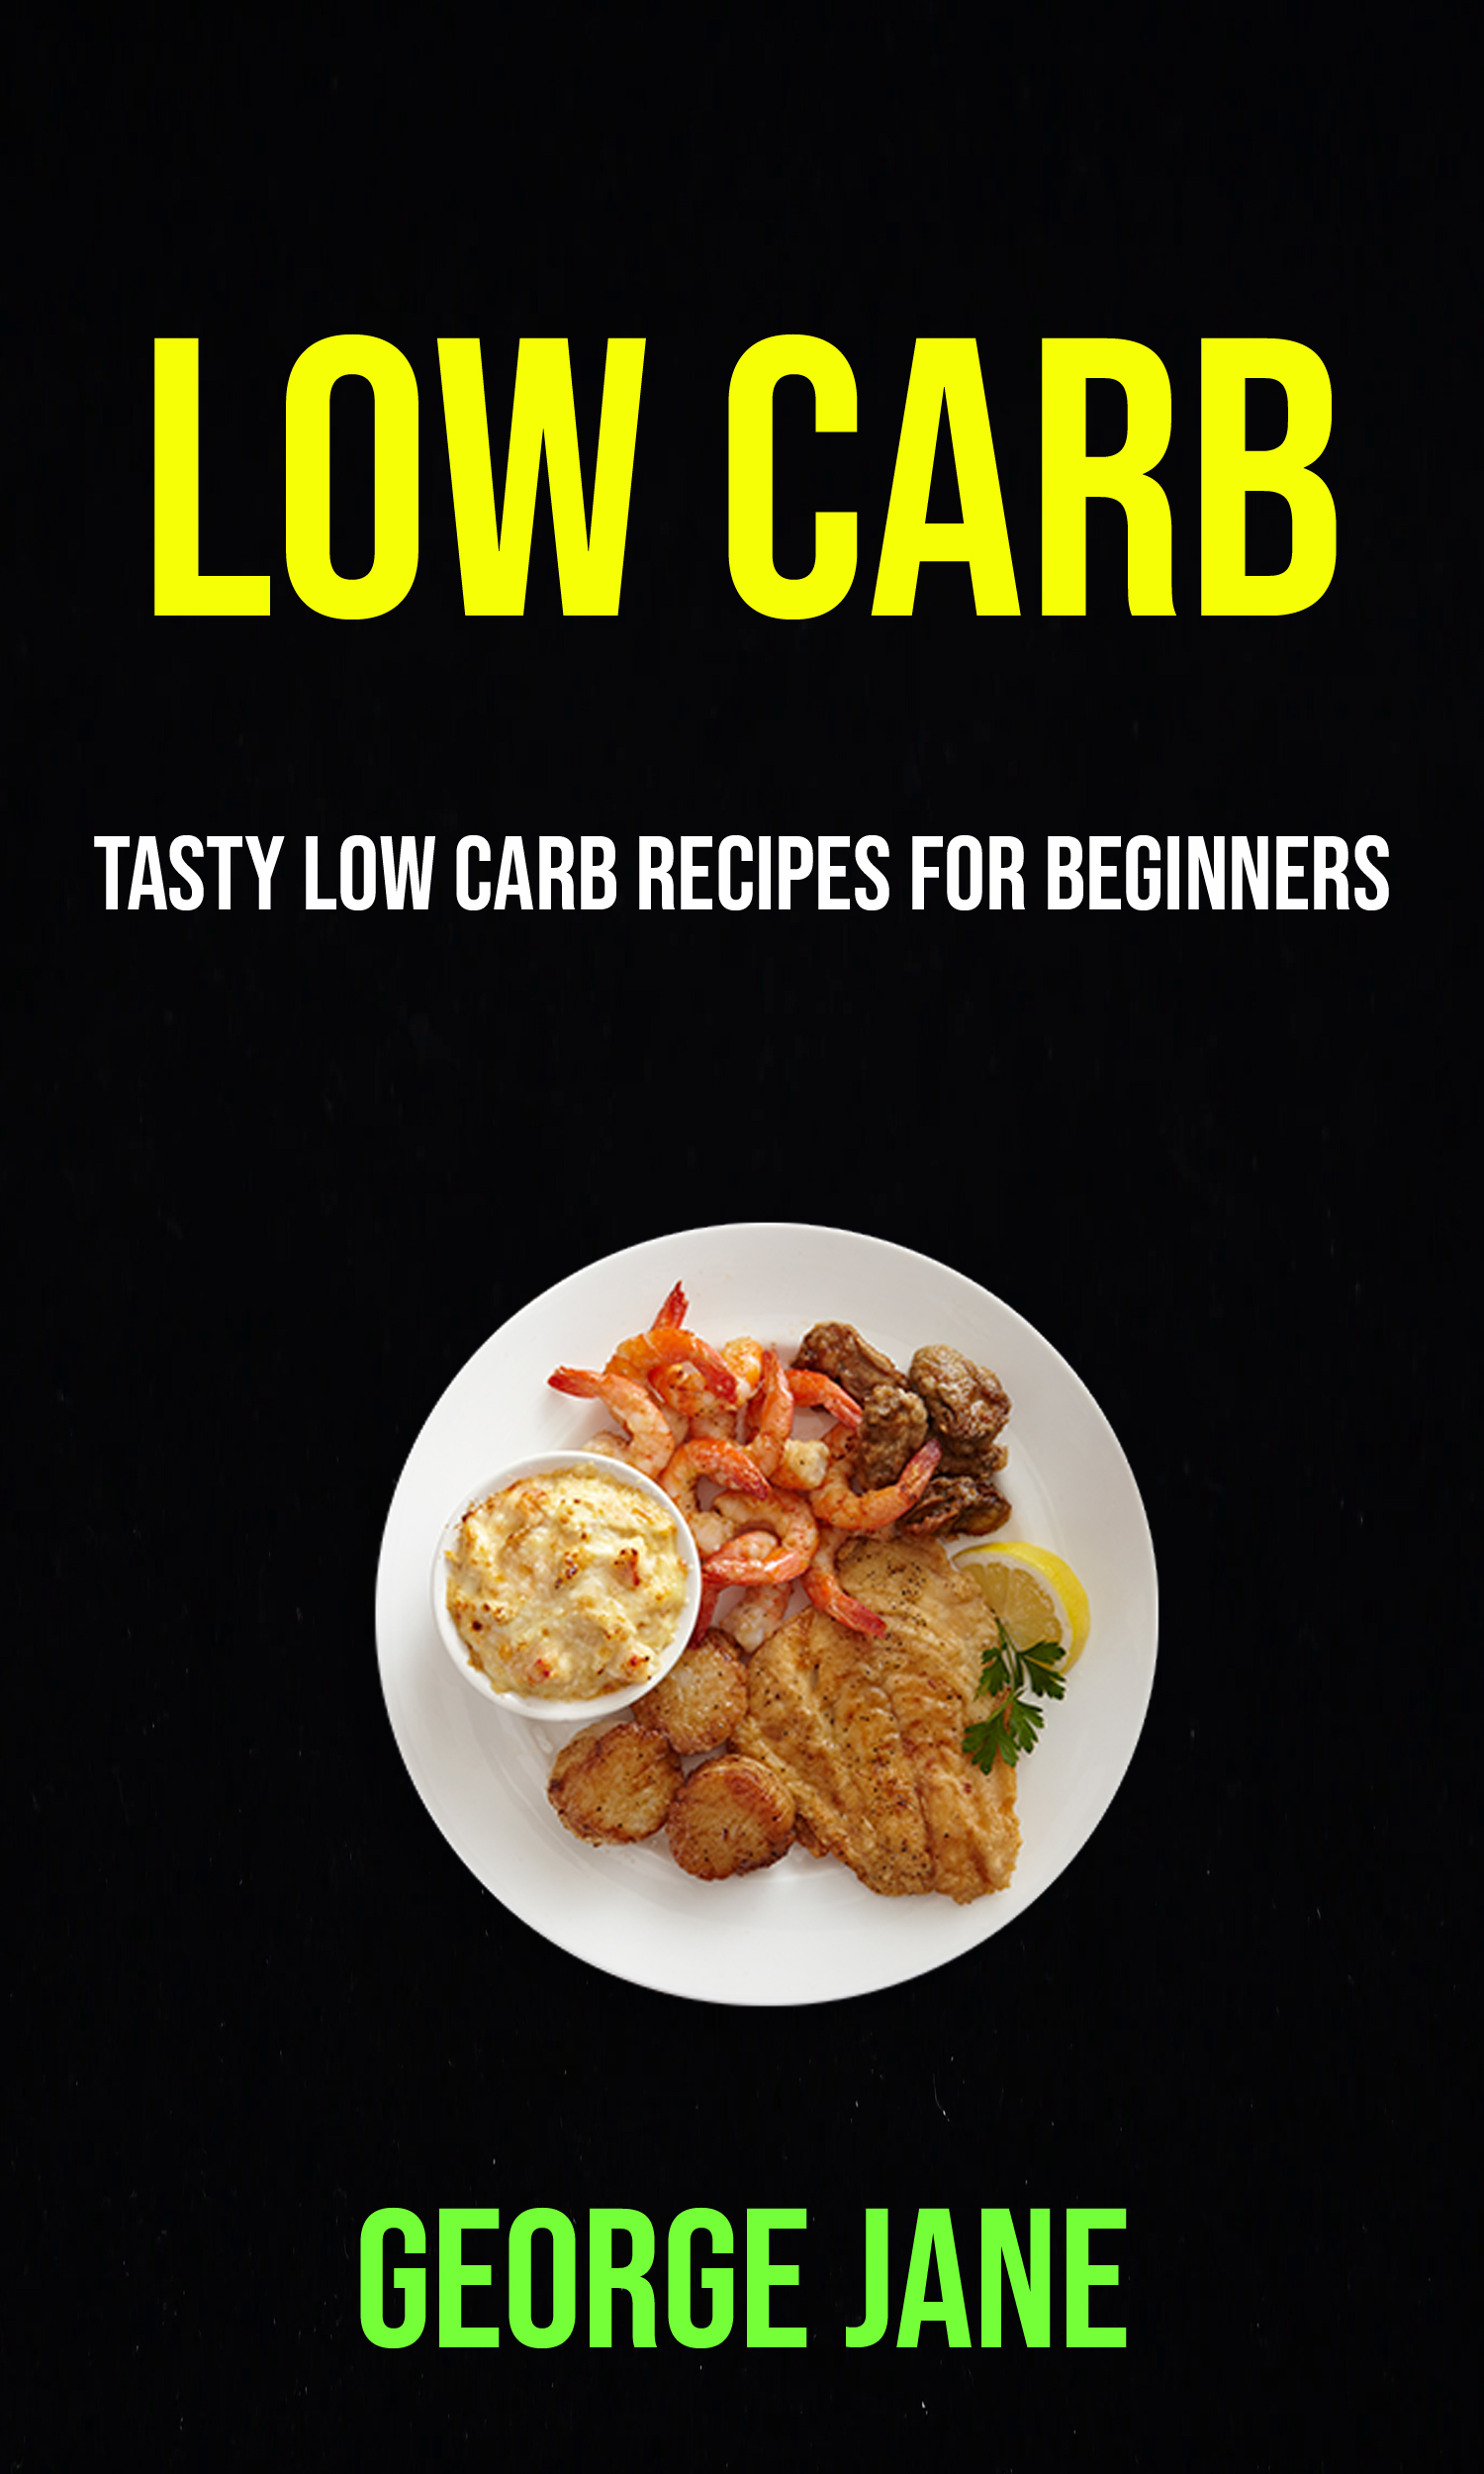 Low carb: tasty low carb recipes for beginners